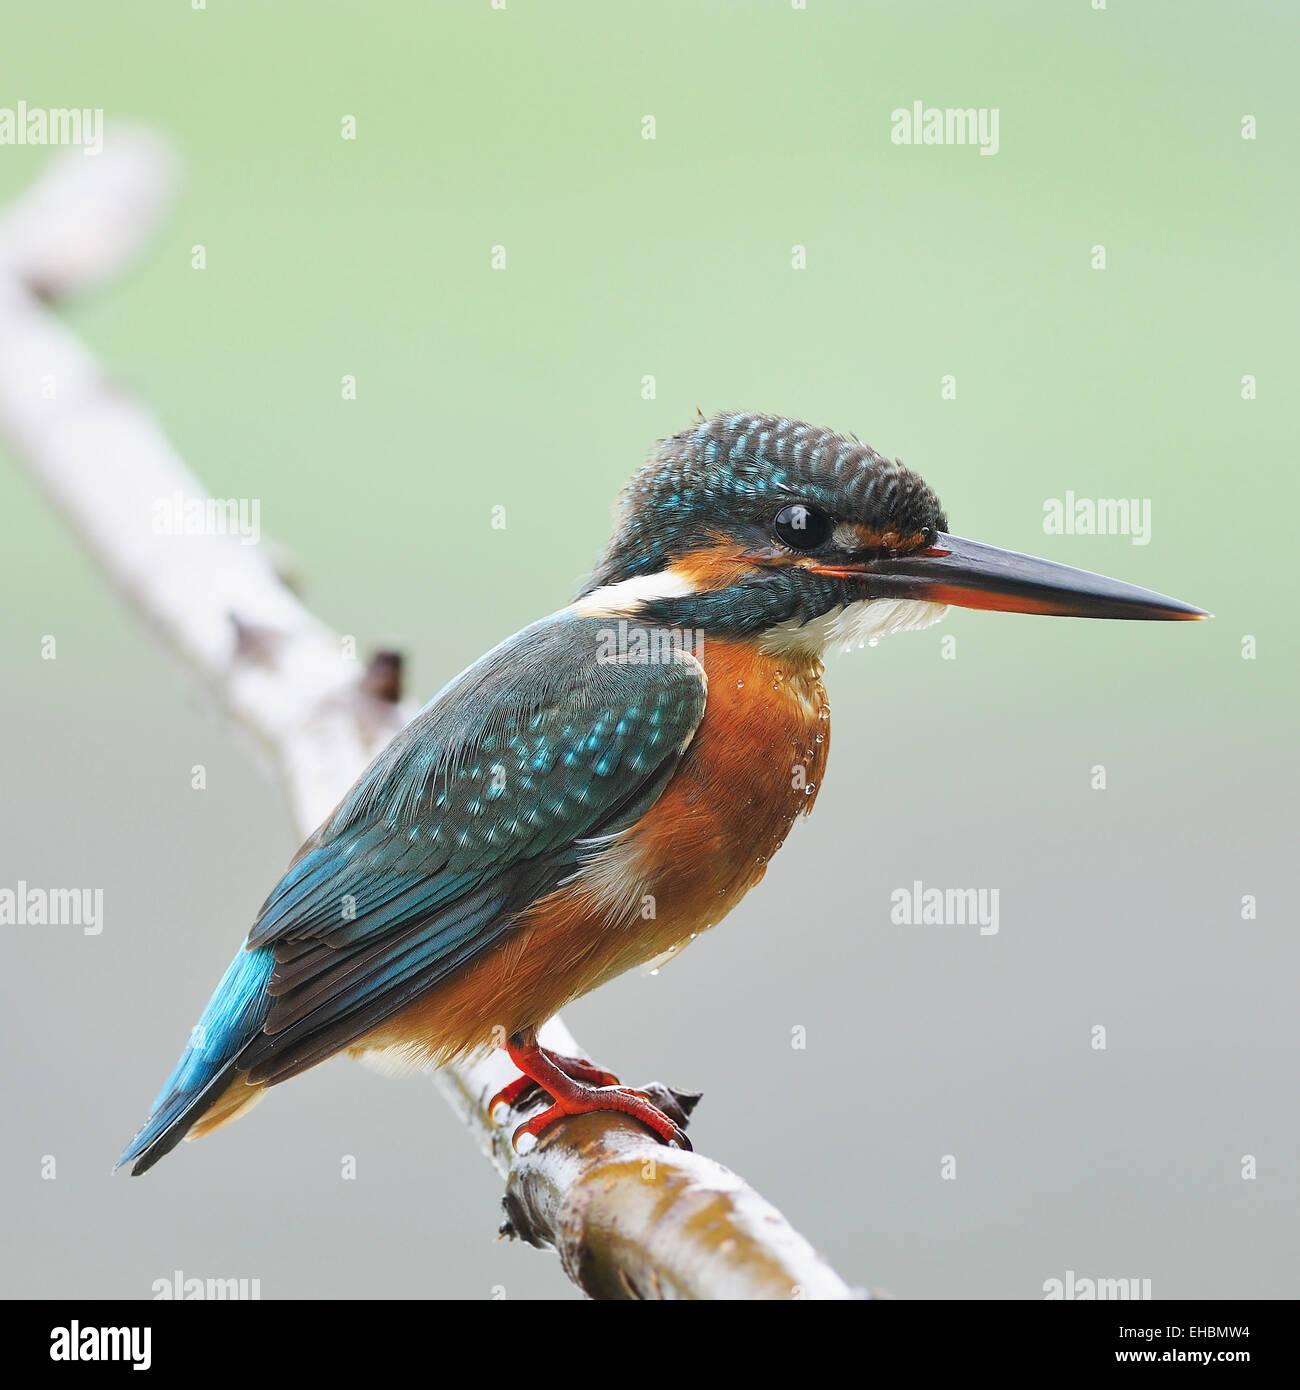 Colorful Kingfisher bird, female Common Kingfisher (Alcedo athis), standing on a branch - Stock Image